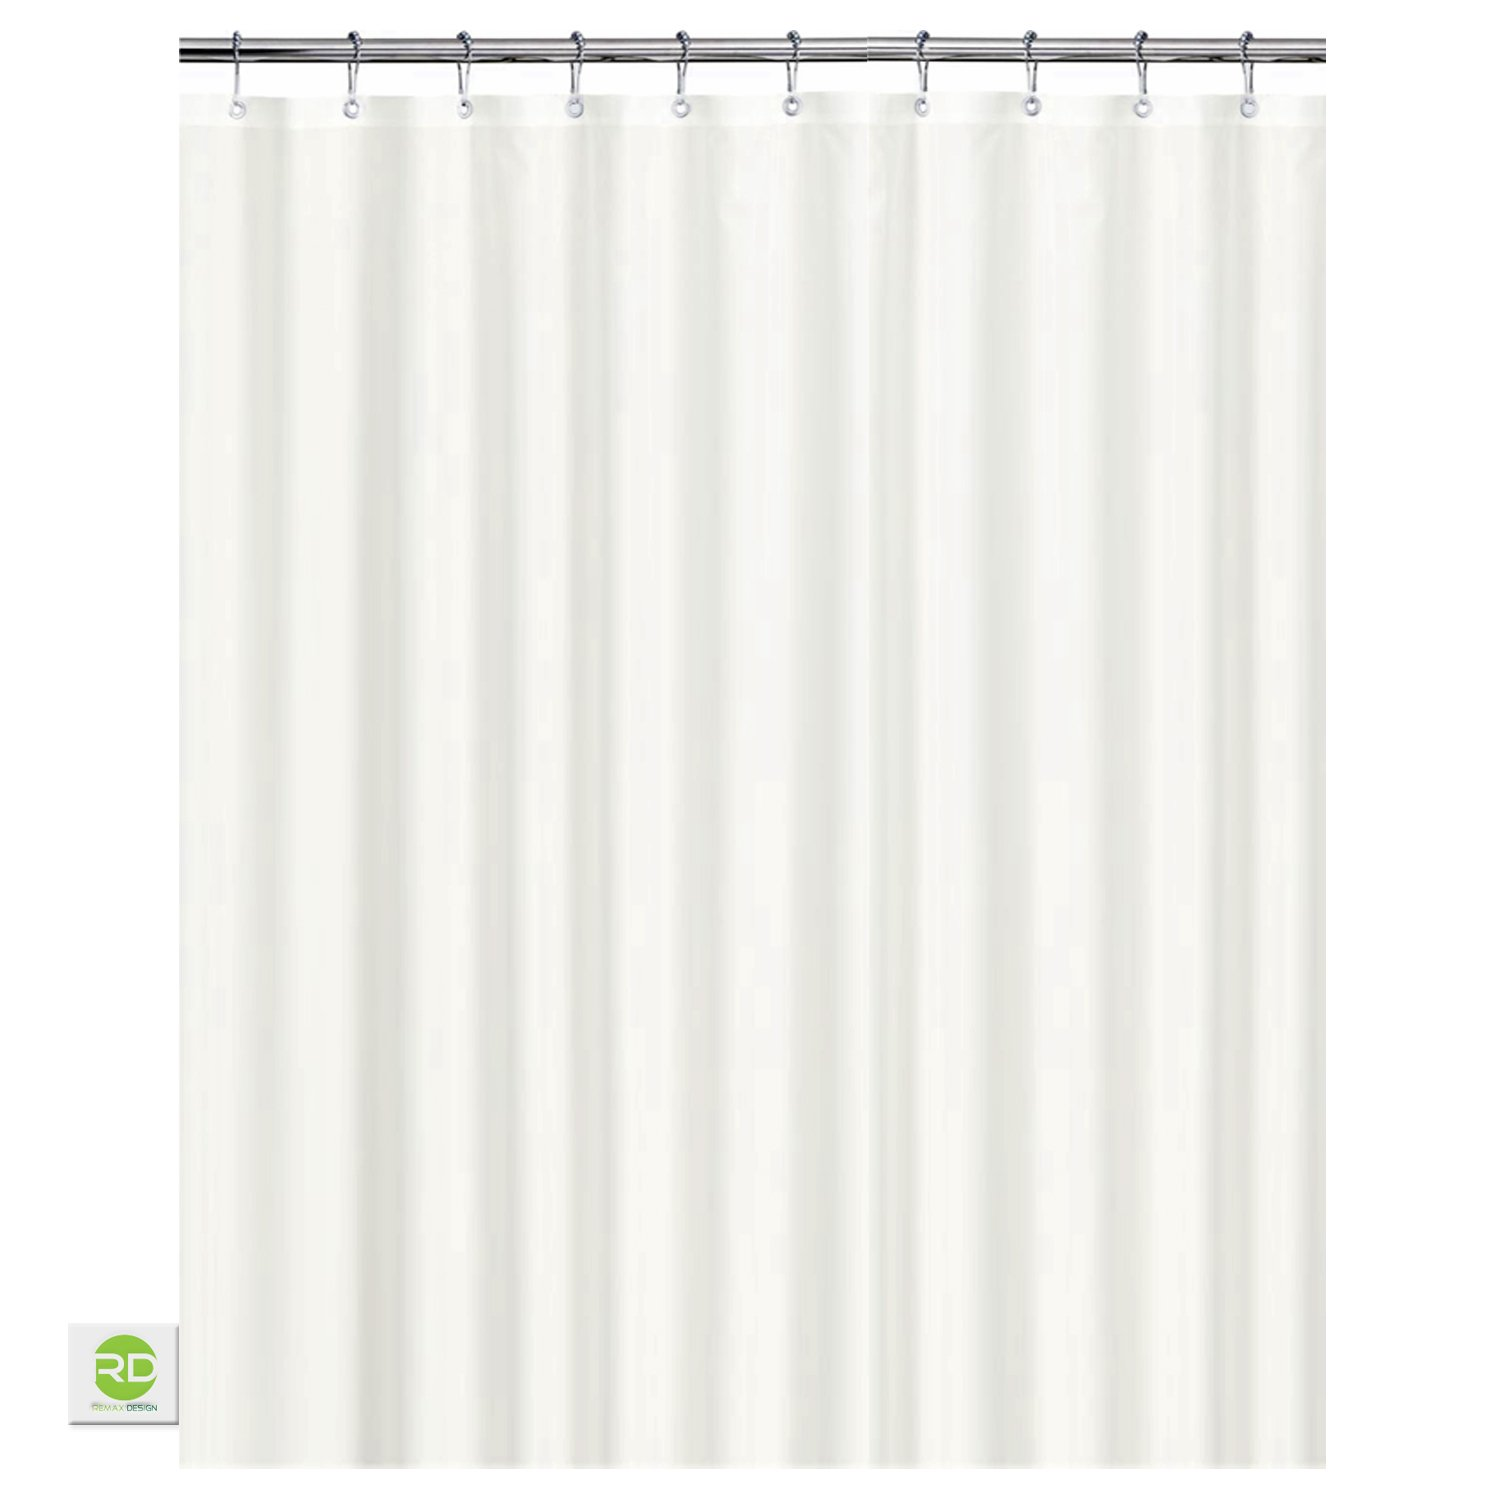 Bathroom plastic curtains - Mildew Resistant Fabric Shower Curtain 72x72 White Polyester Curtain For Bathroom Waterproof Odorless Eco Friendly Anti